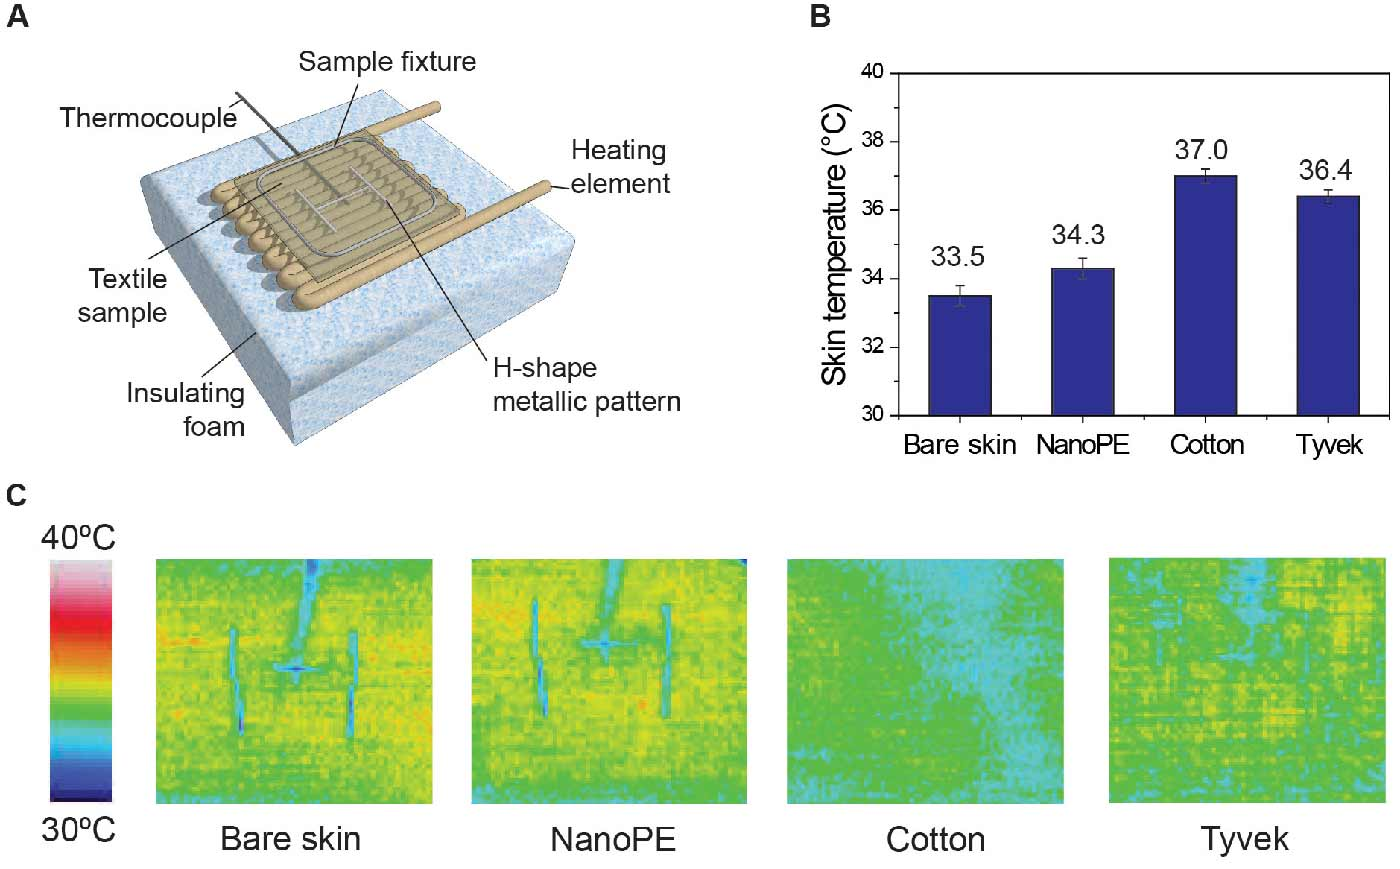 Thermal measurement of nanopolyethylene (nanoPE) and various textile samples. (A) experimental setup of textile thermal measurement. (B) Thermal measurement of bare skin, nanoPE, cotton, and Tyvek. (C) Thermal imaging of bare skin and the three samples. © Stanford University